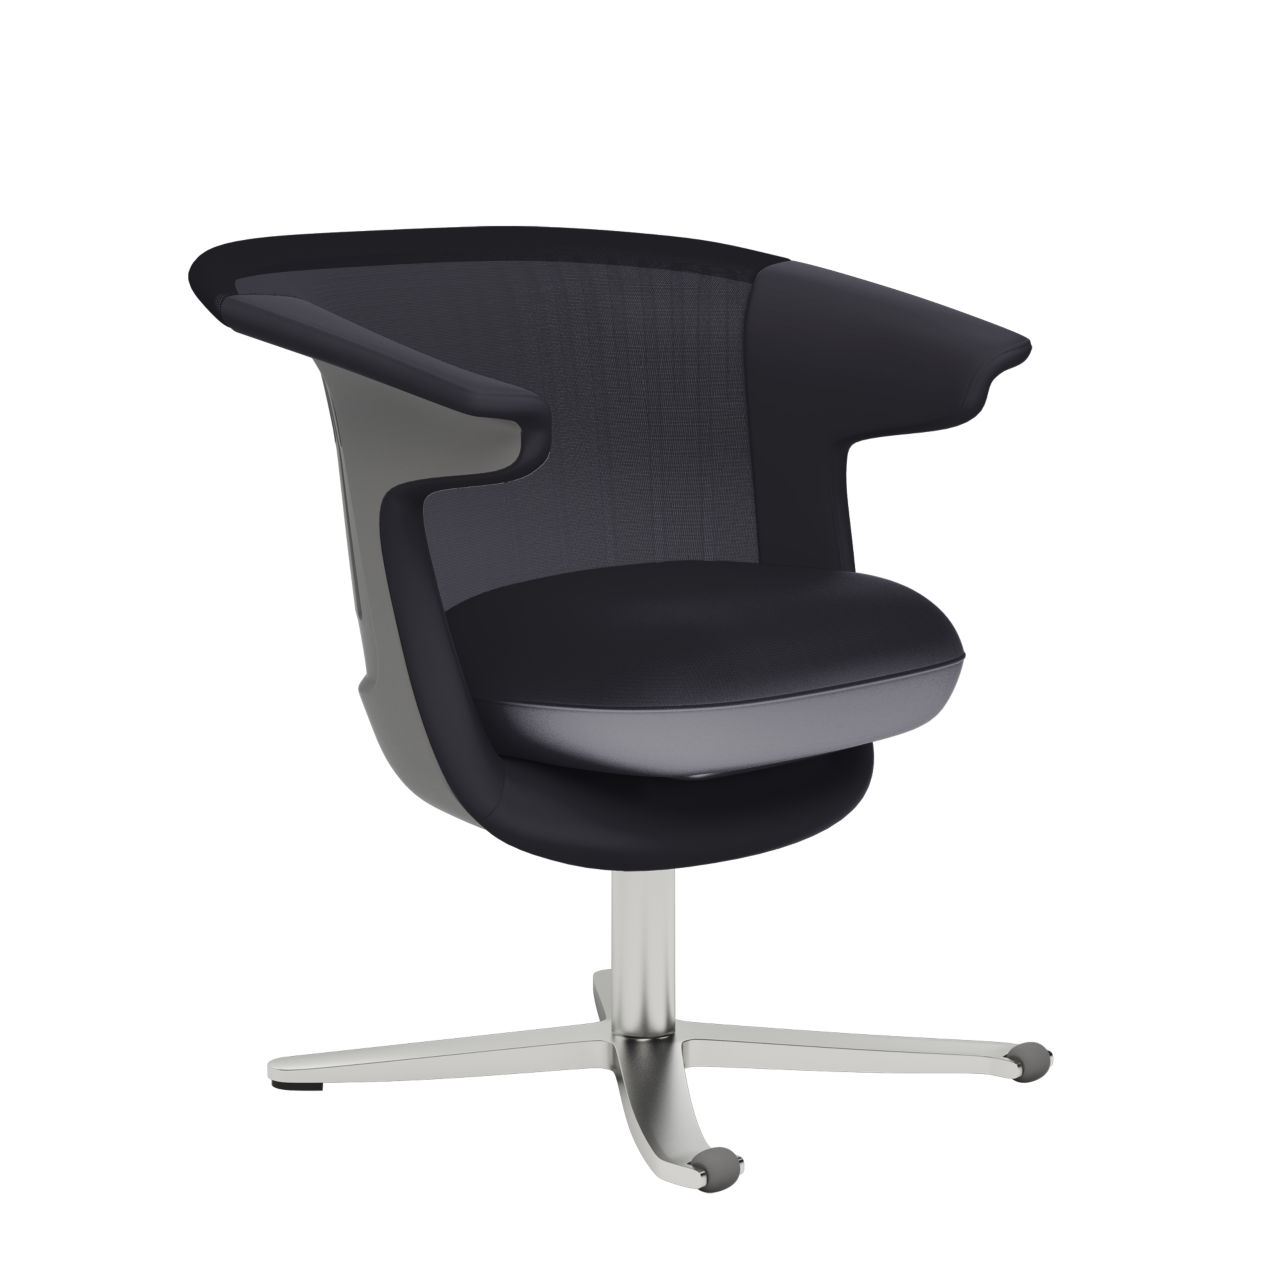 i2i Lounge Chair in Near Black by Steelcase